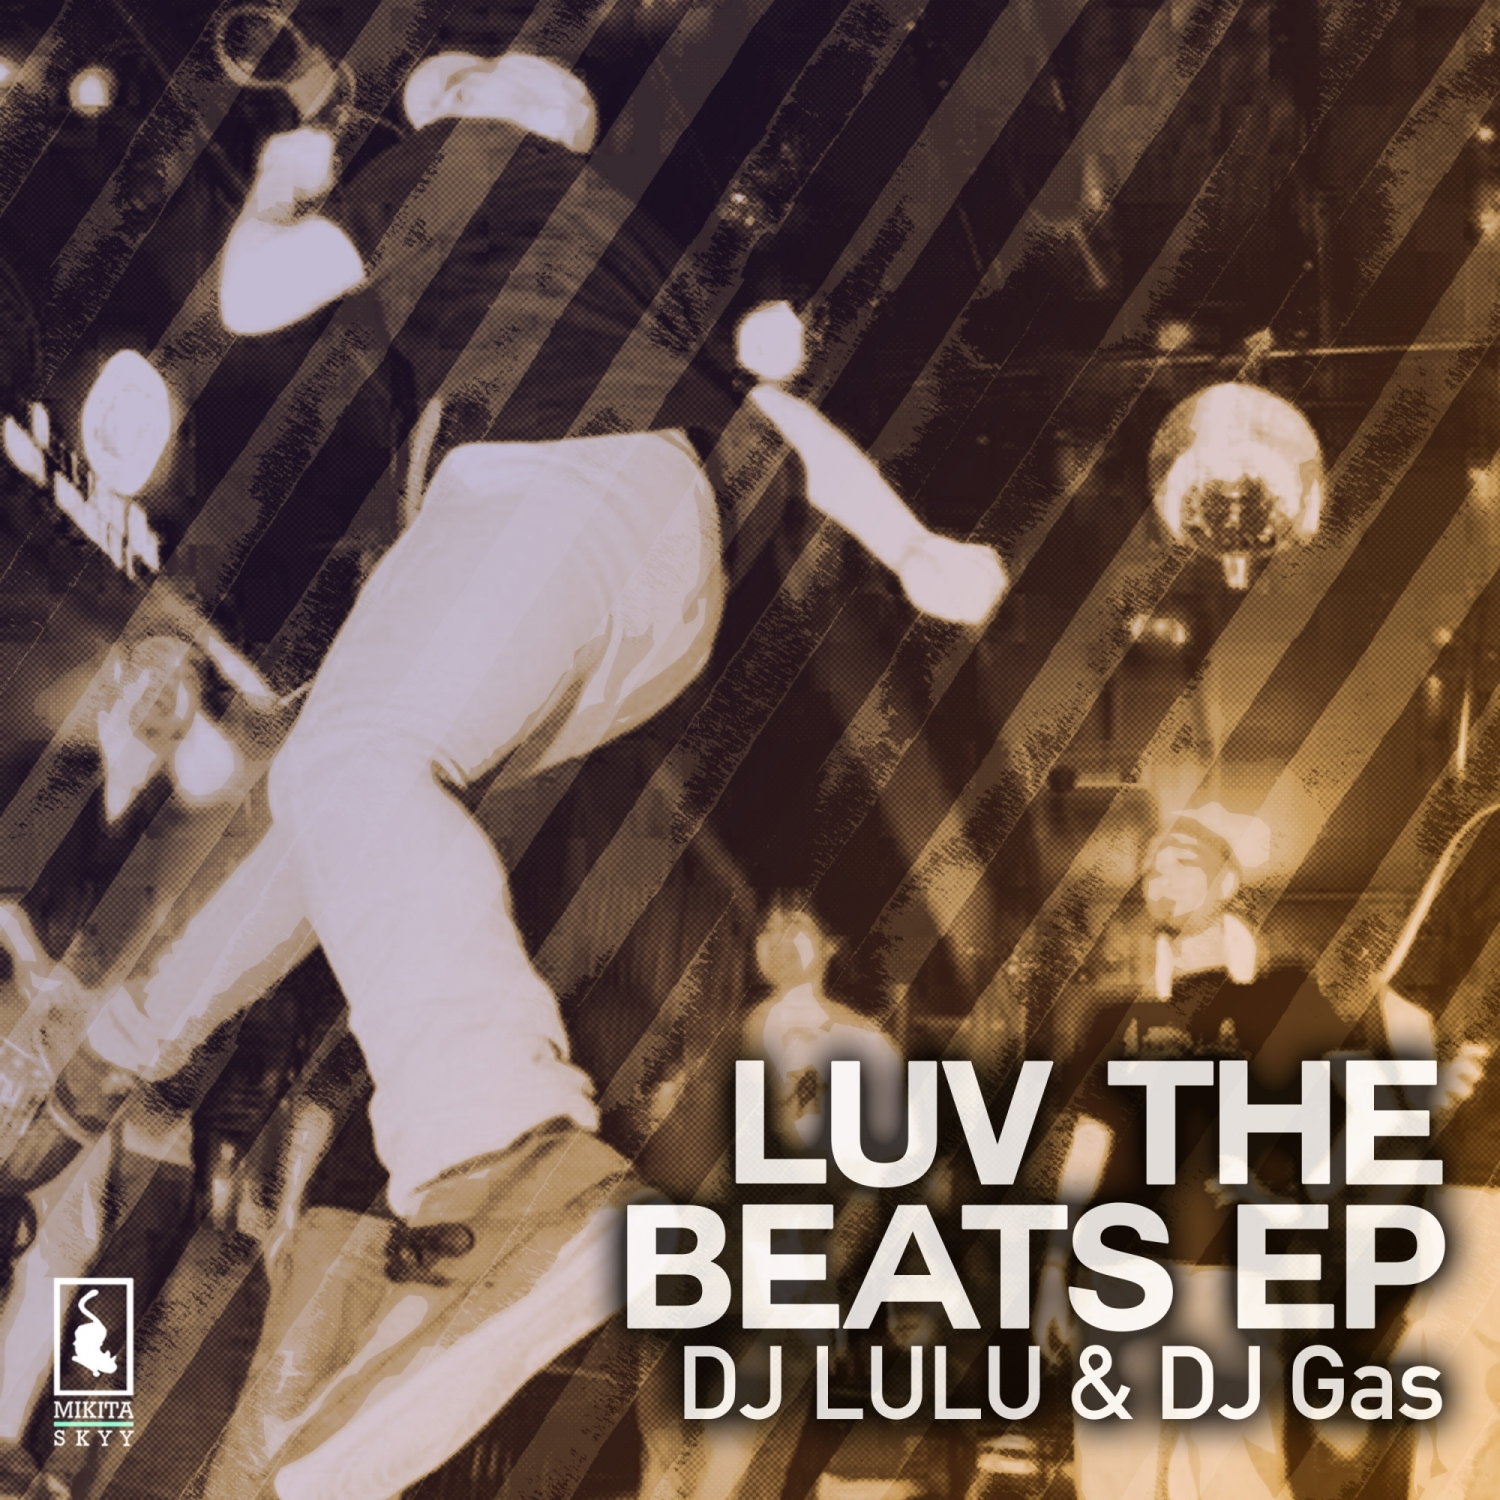 DJ LULU & DJ Gas - Luv The Beats  (Original Mix)